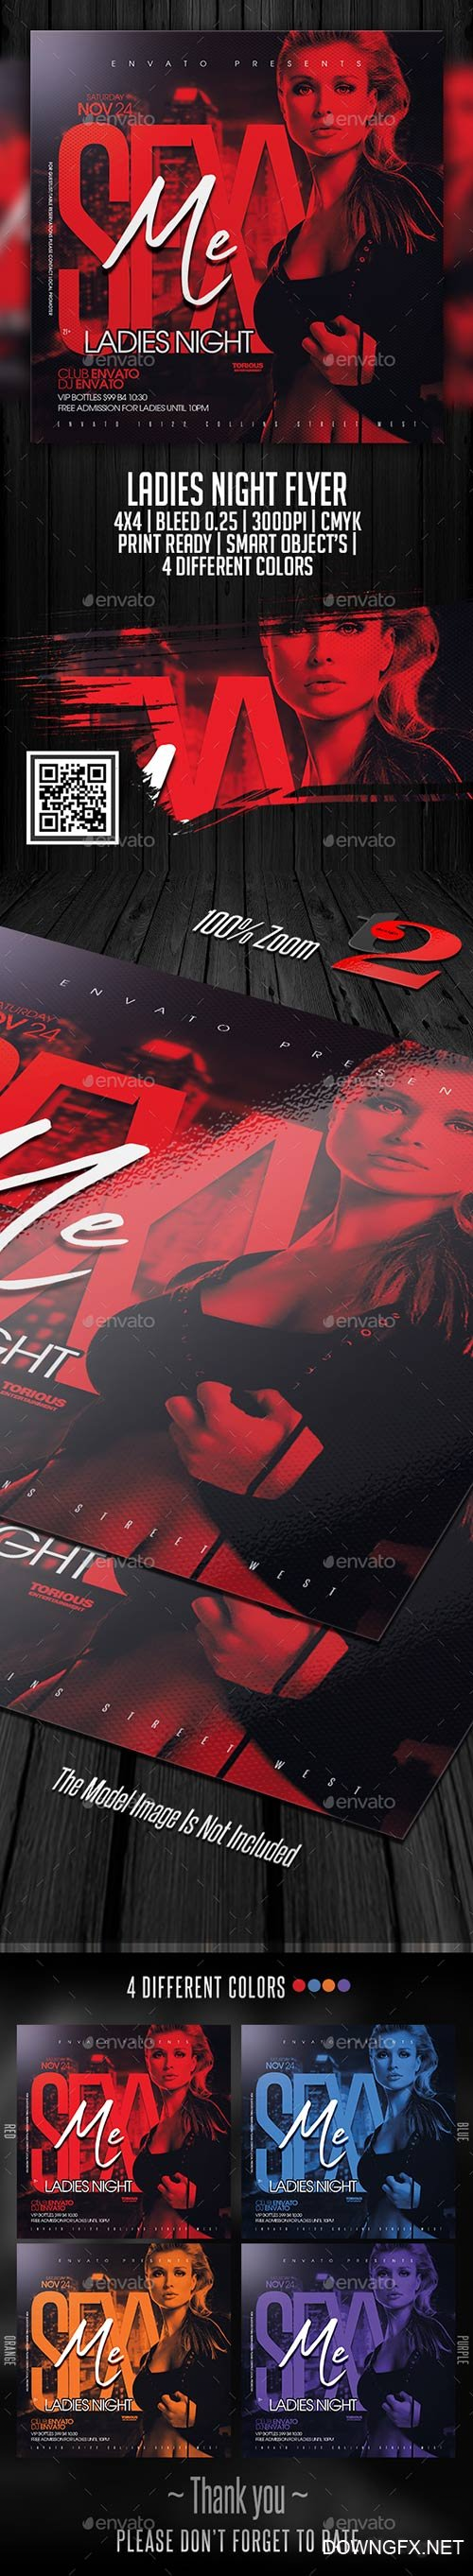 Ladies Night Flyer Template 22600178